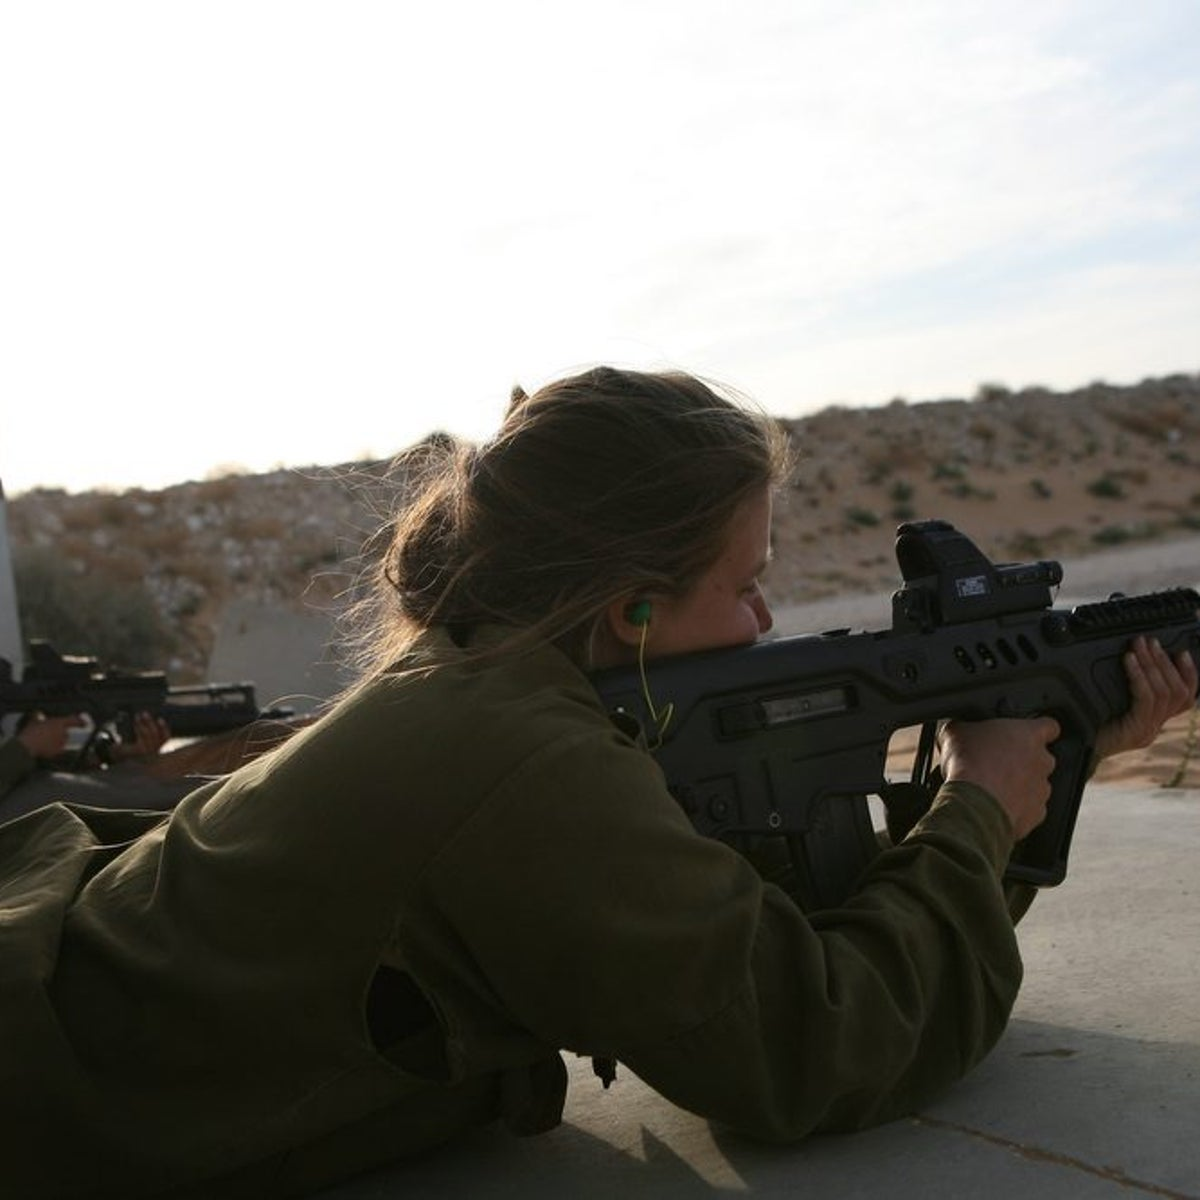 Female soldiers in the Israeli army.